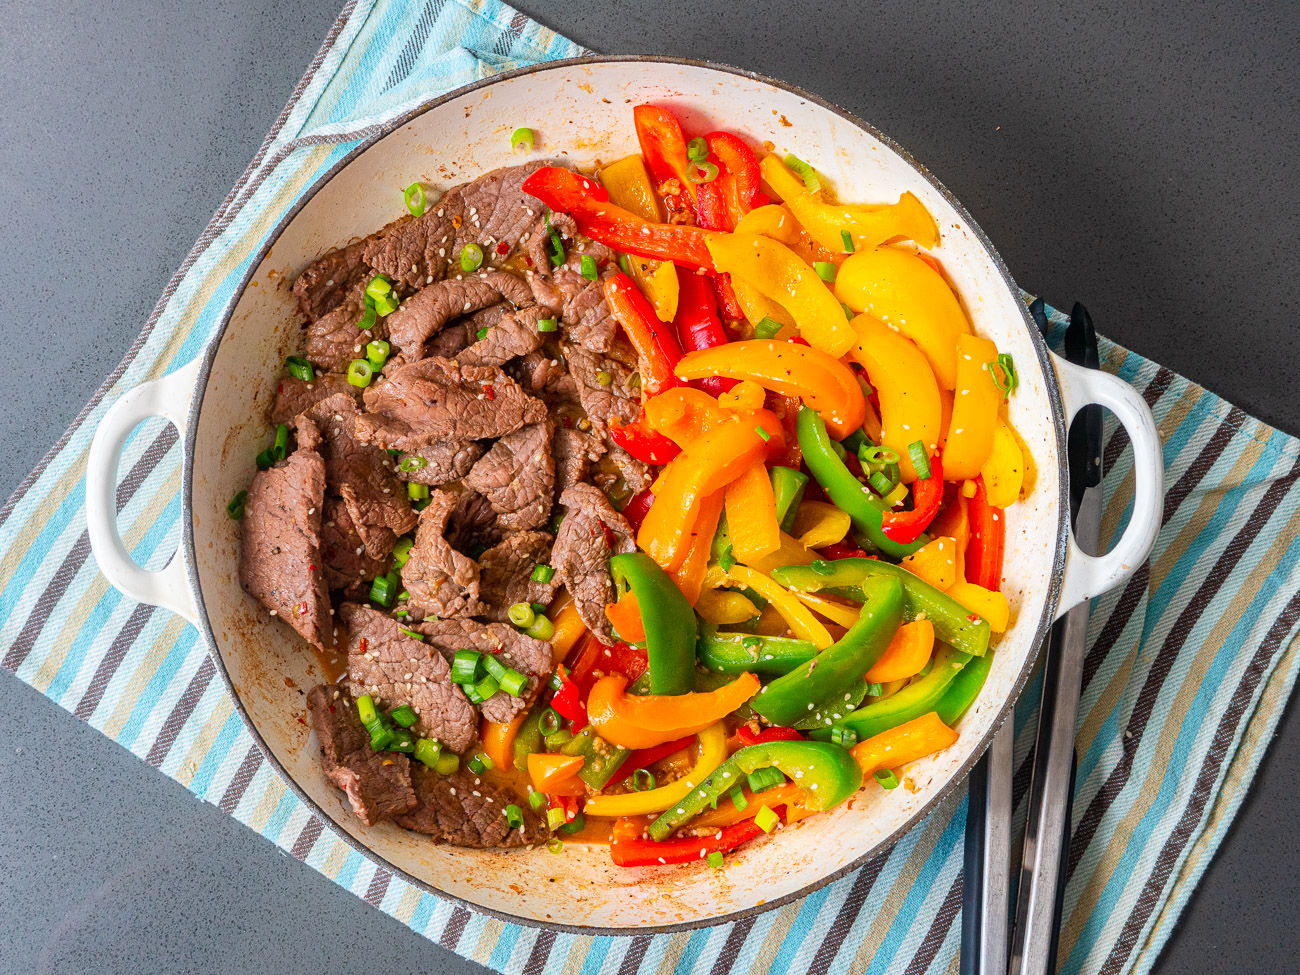 Top down of peppers and steak in a skillet